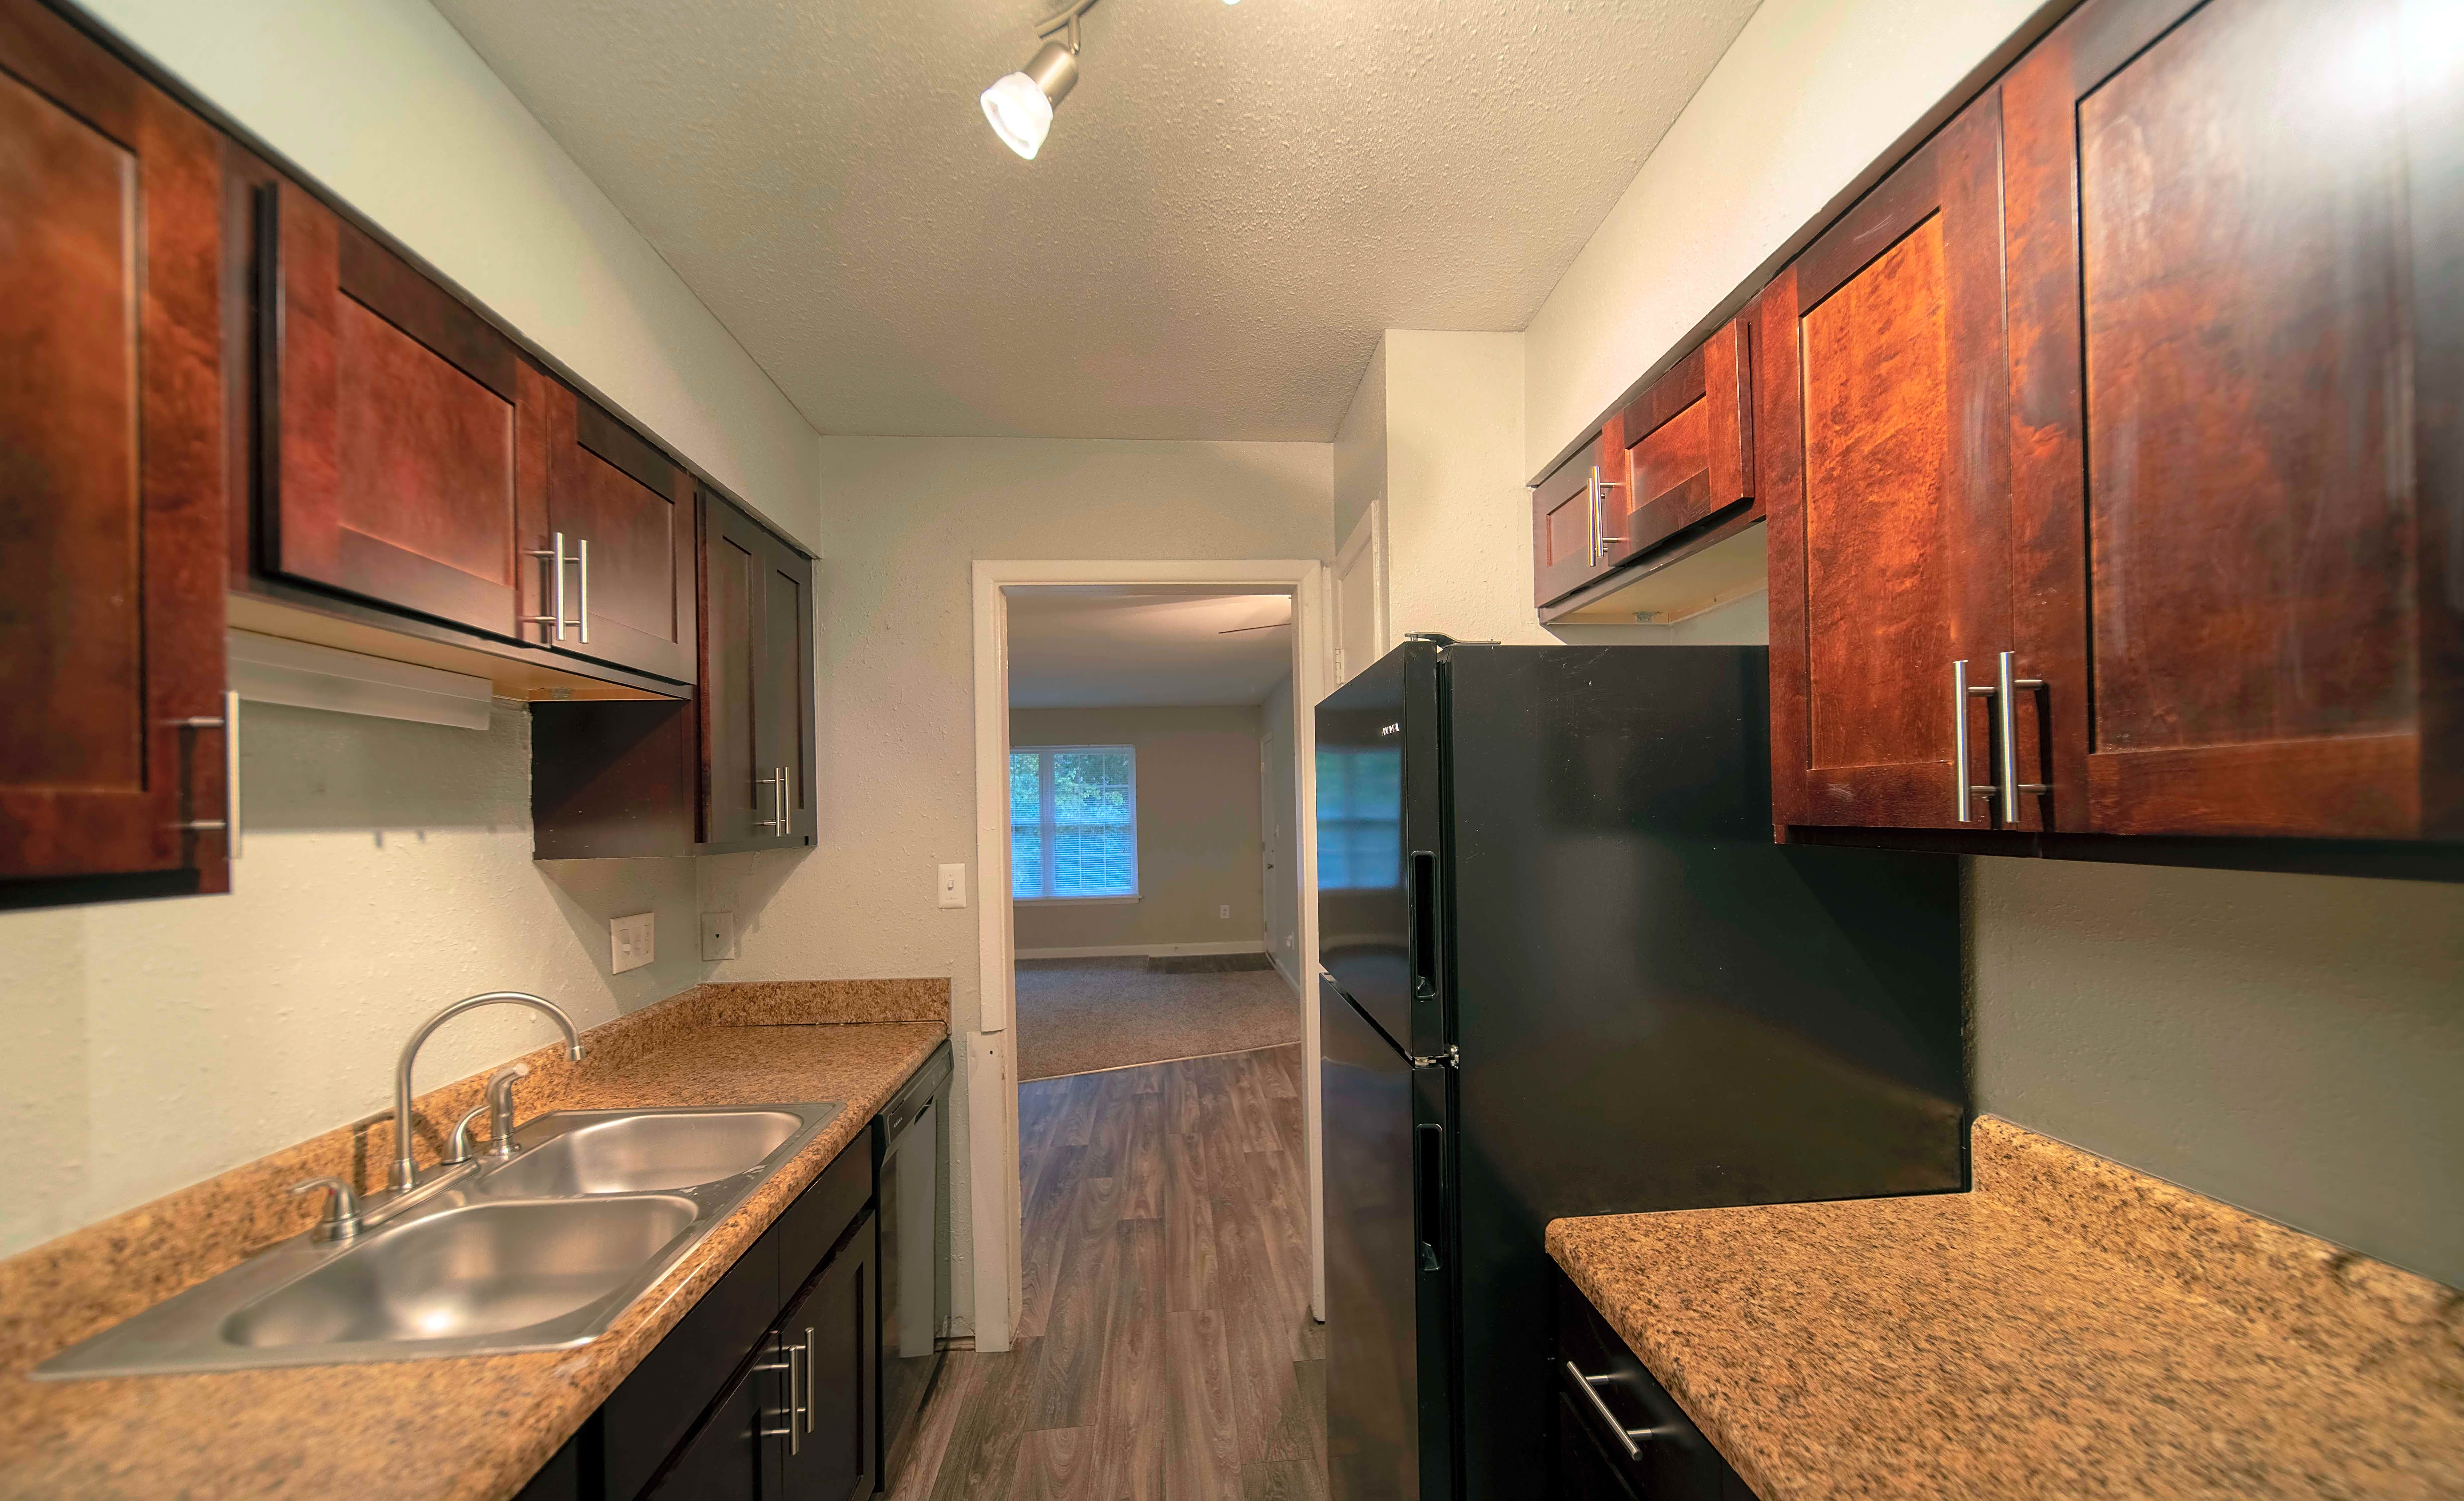 Apartments Near Furman Element at East North for Furman University Students in Greenville, SC